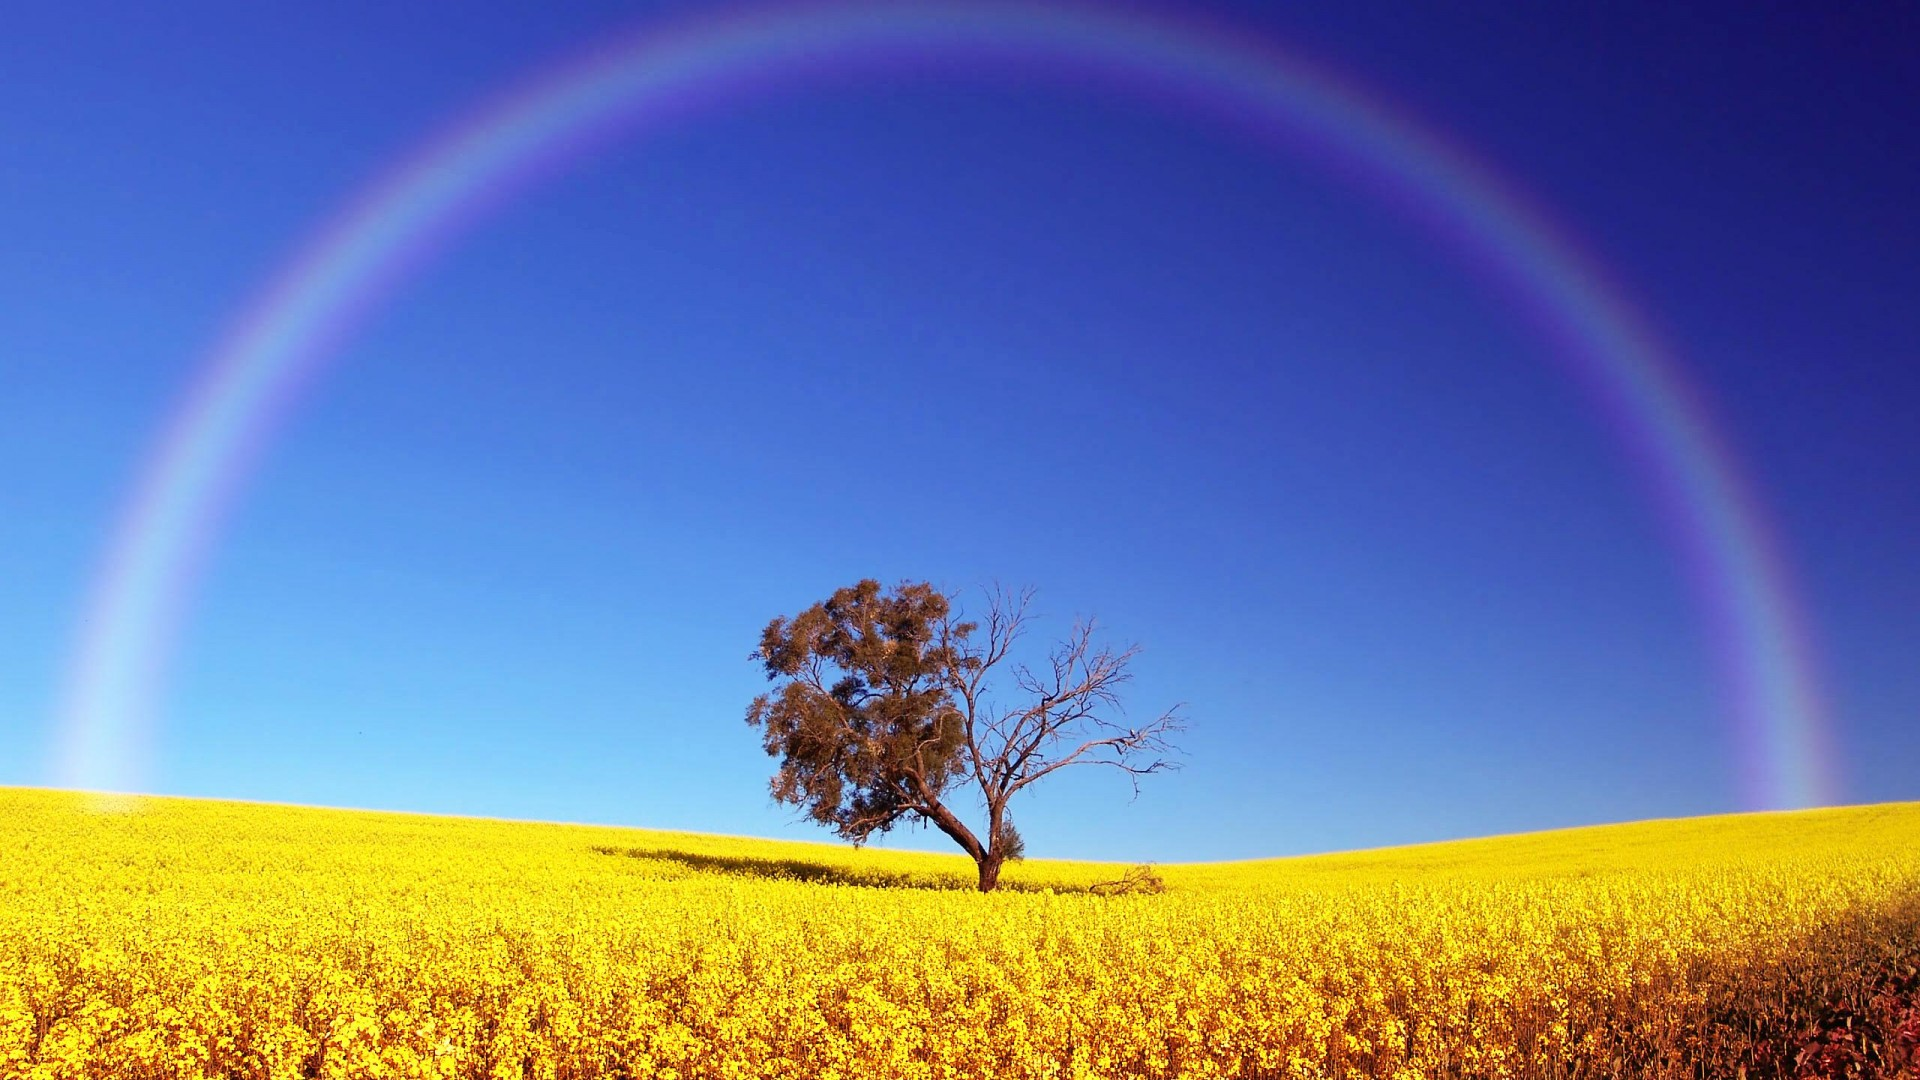 Hd wallpaper rainbow - Rainbow Hd Wallpapers Pictures Images Backgrounds Photos